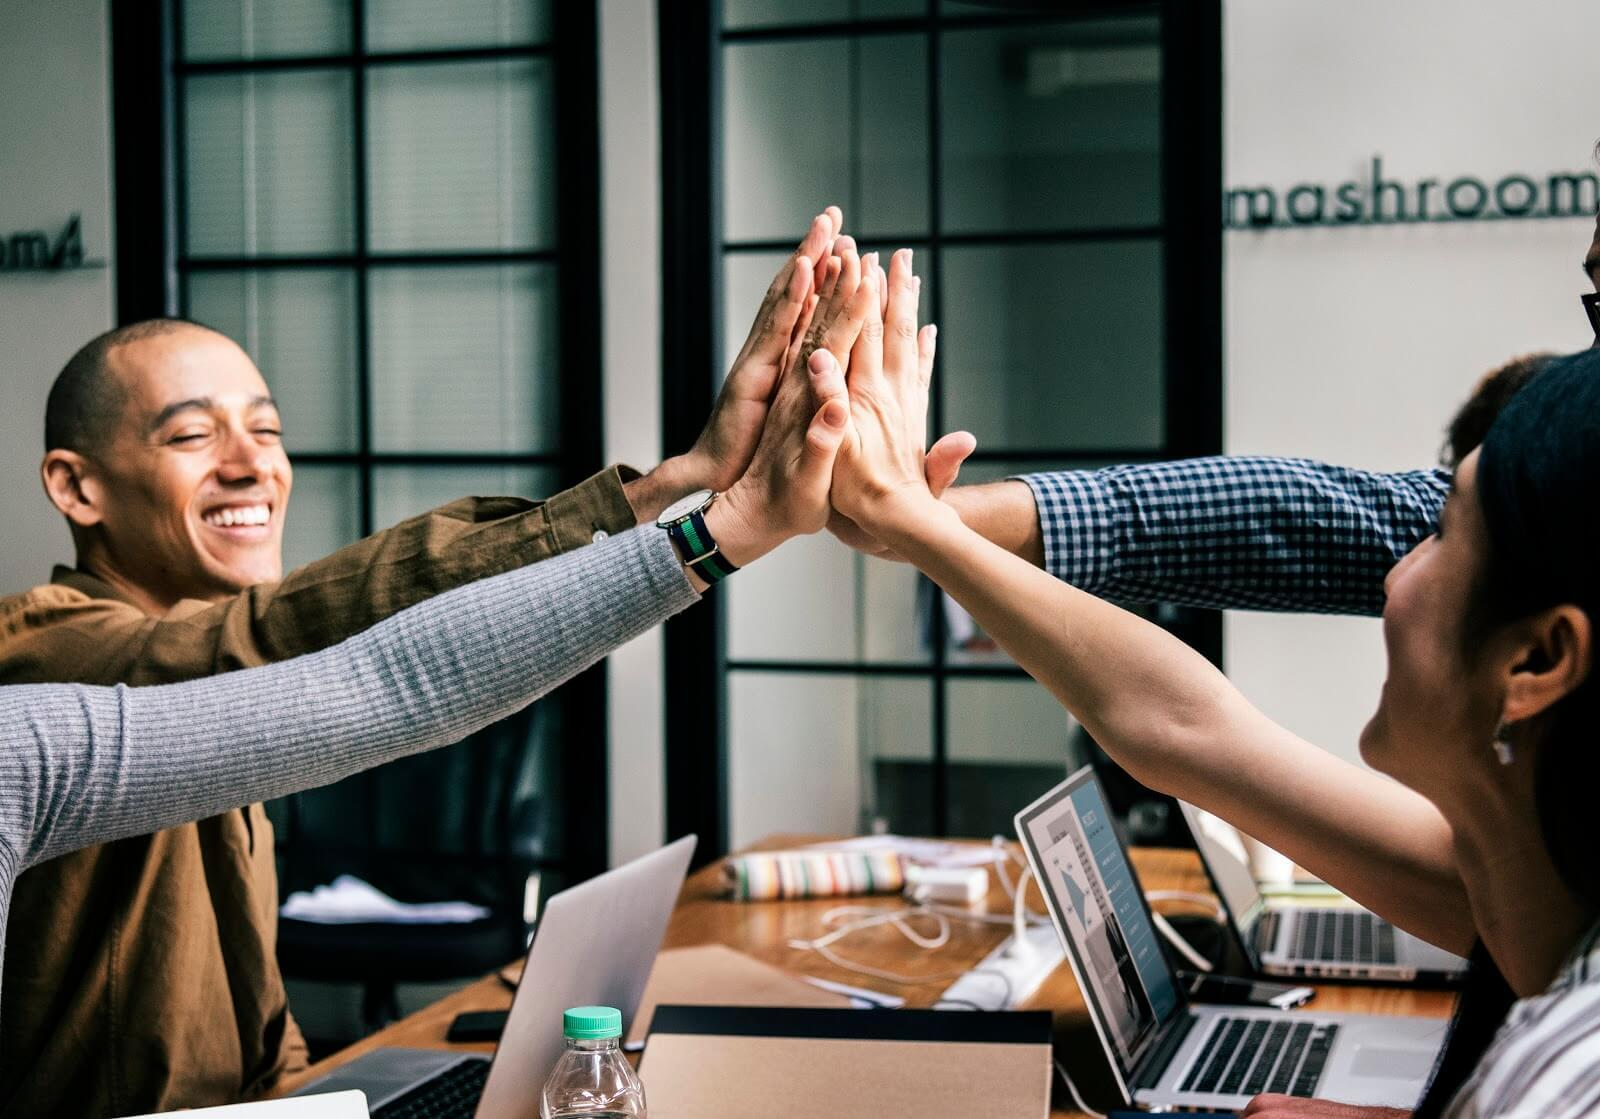 Four coders giving high fives representing an answer to the question - Are coding bootcamps worth it?